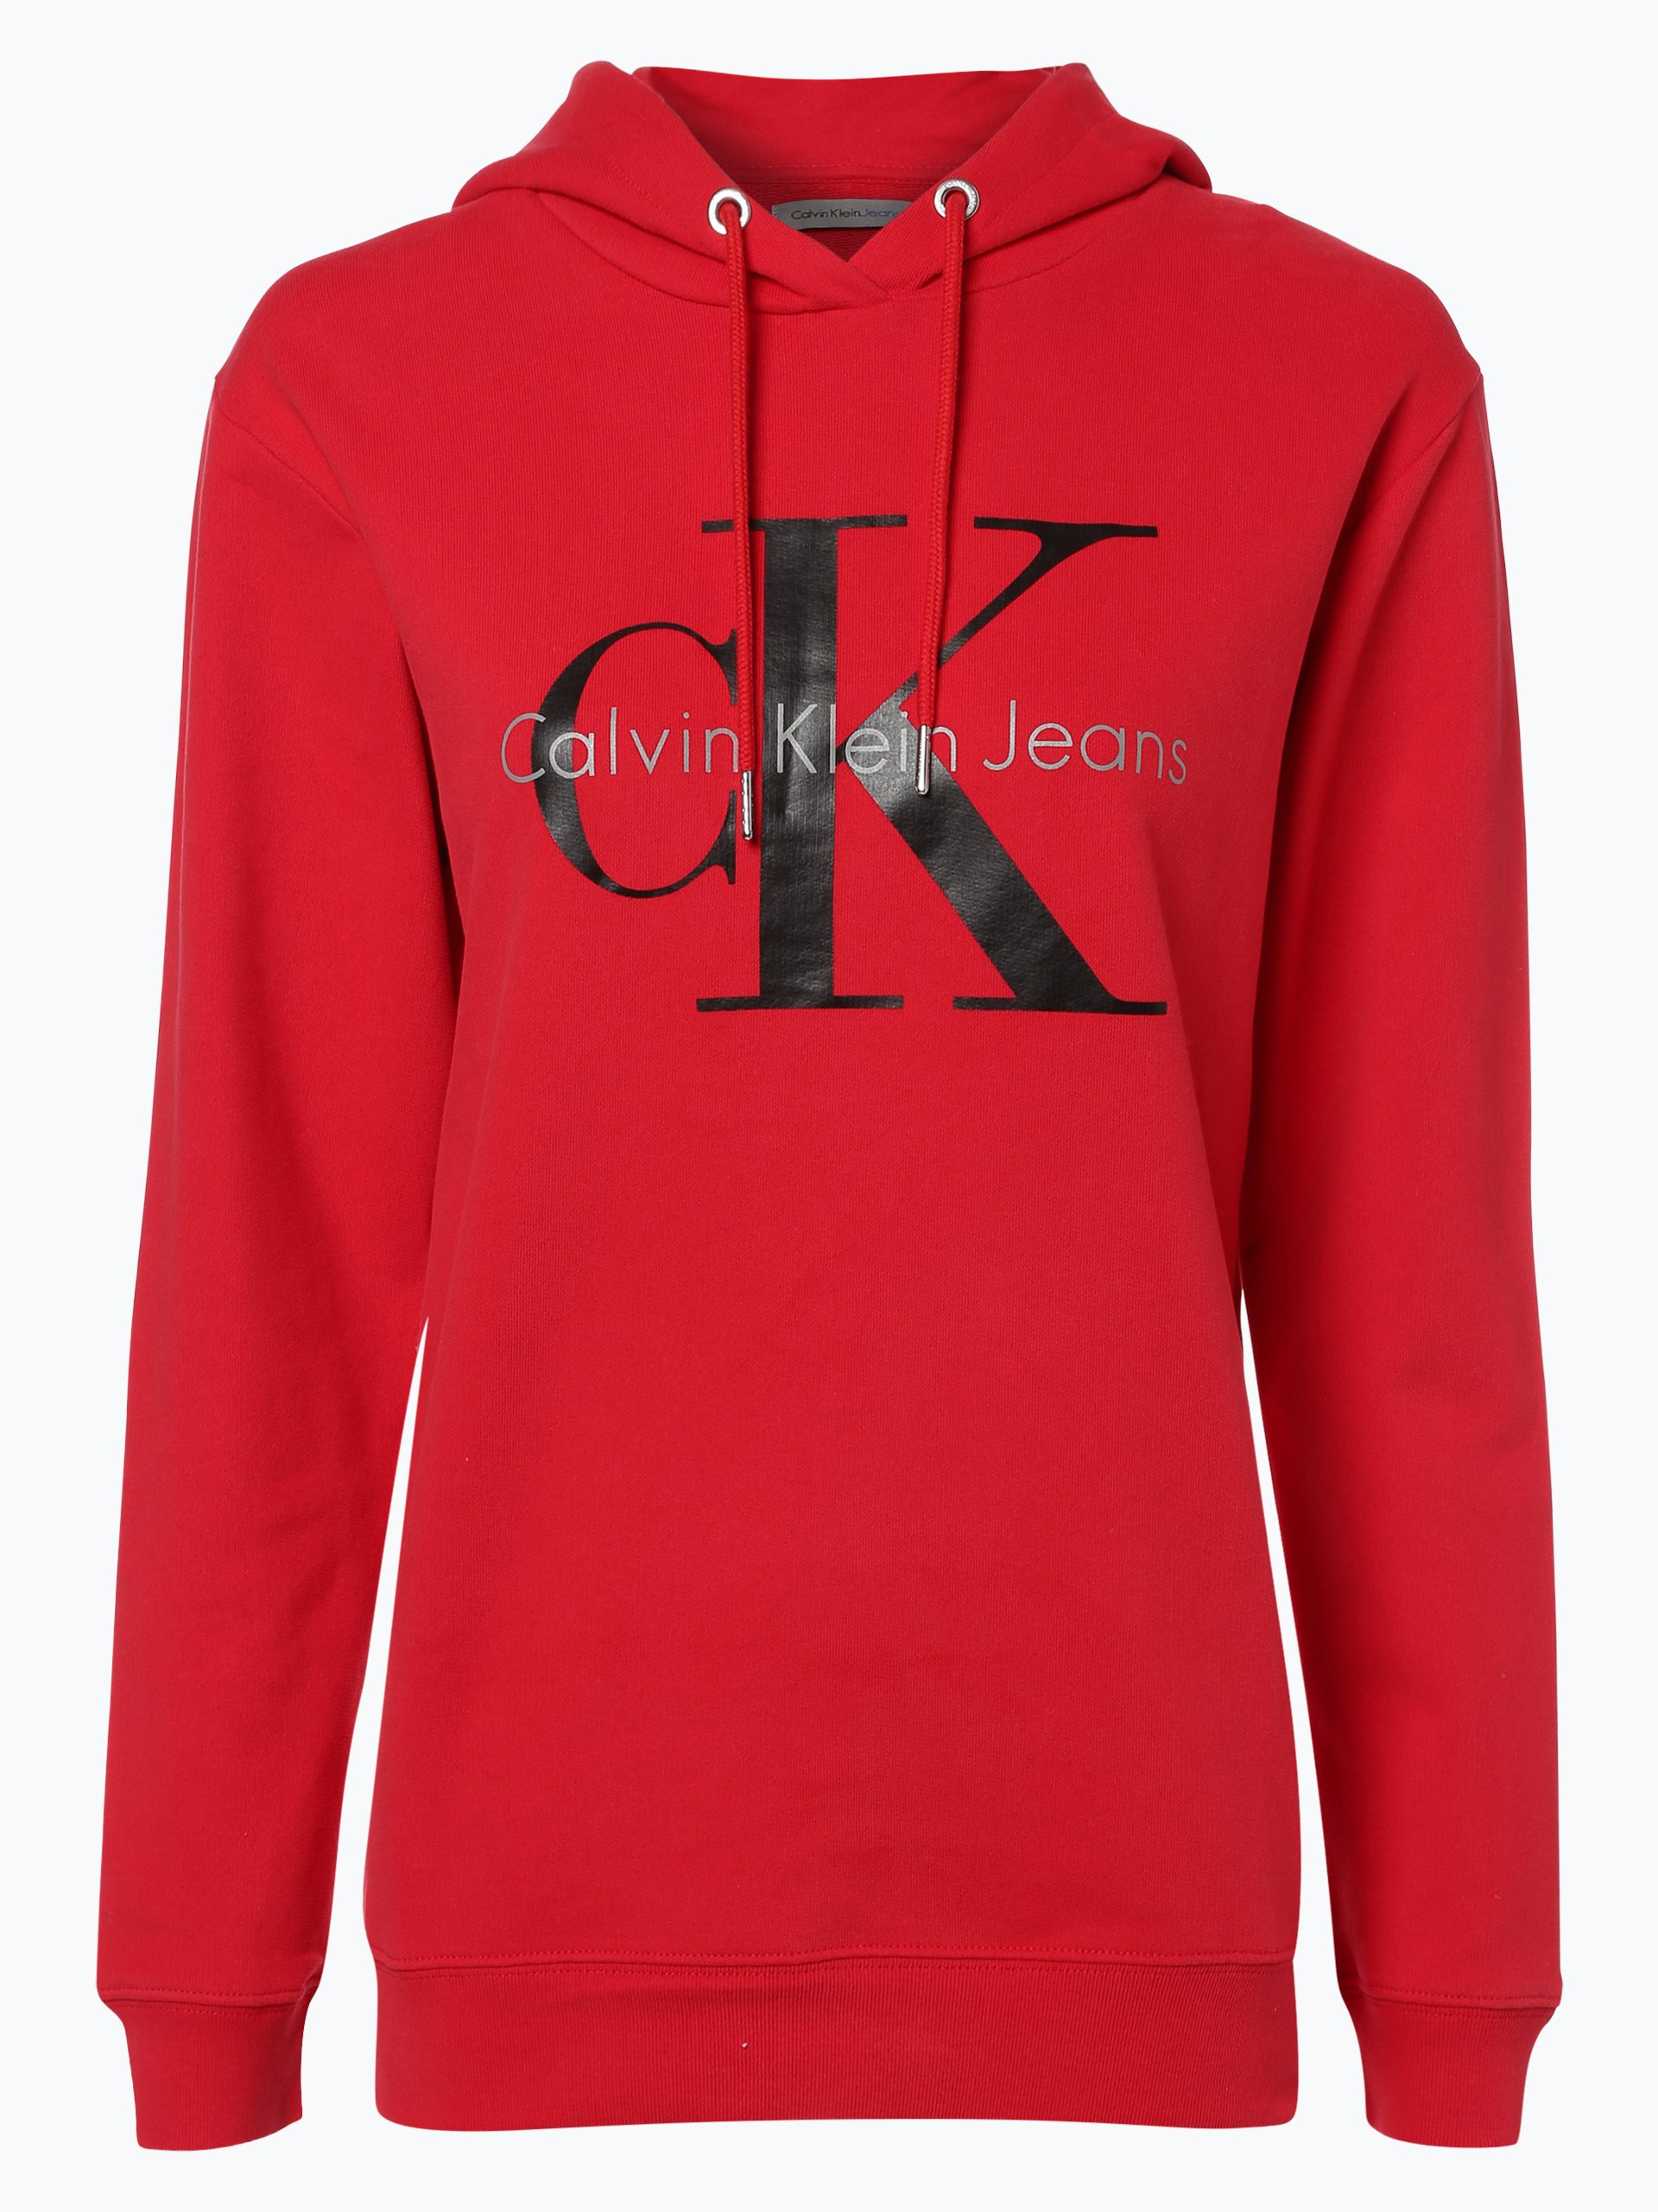 calvin klein jeans damen sweatshirt rot gemustert online. Black Bedroom Furniture Sets. Home Design Ideas